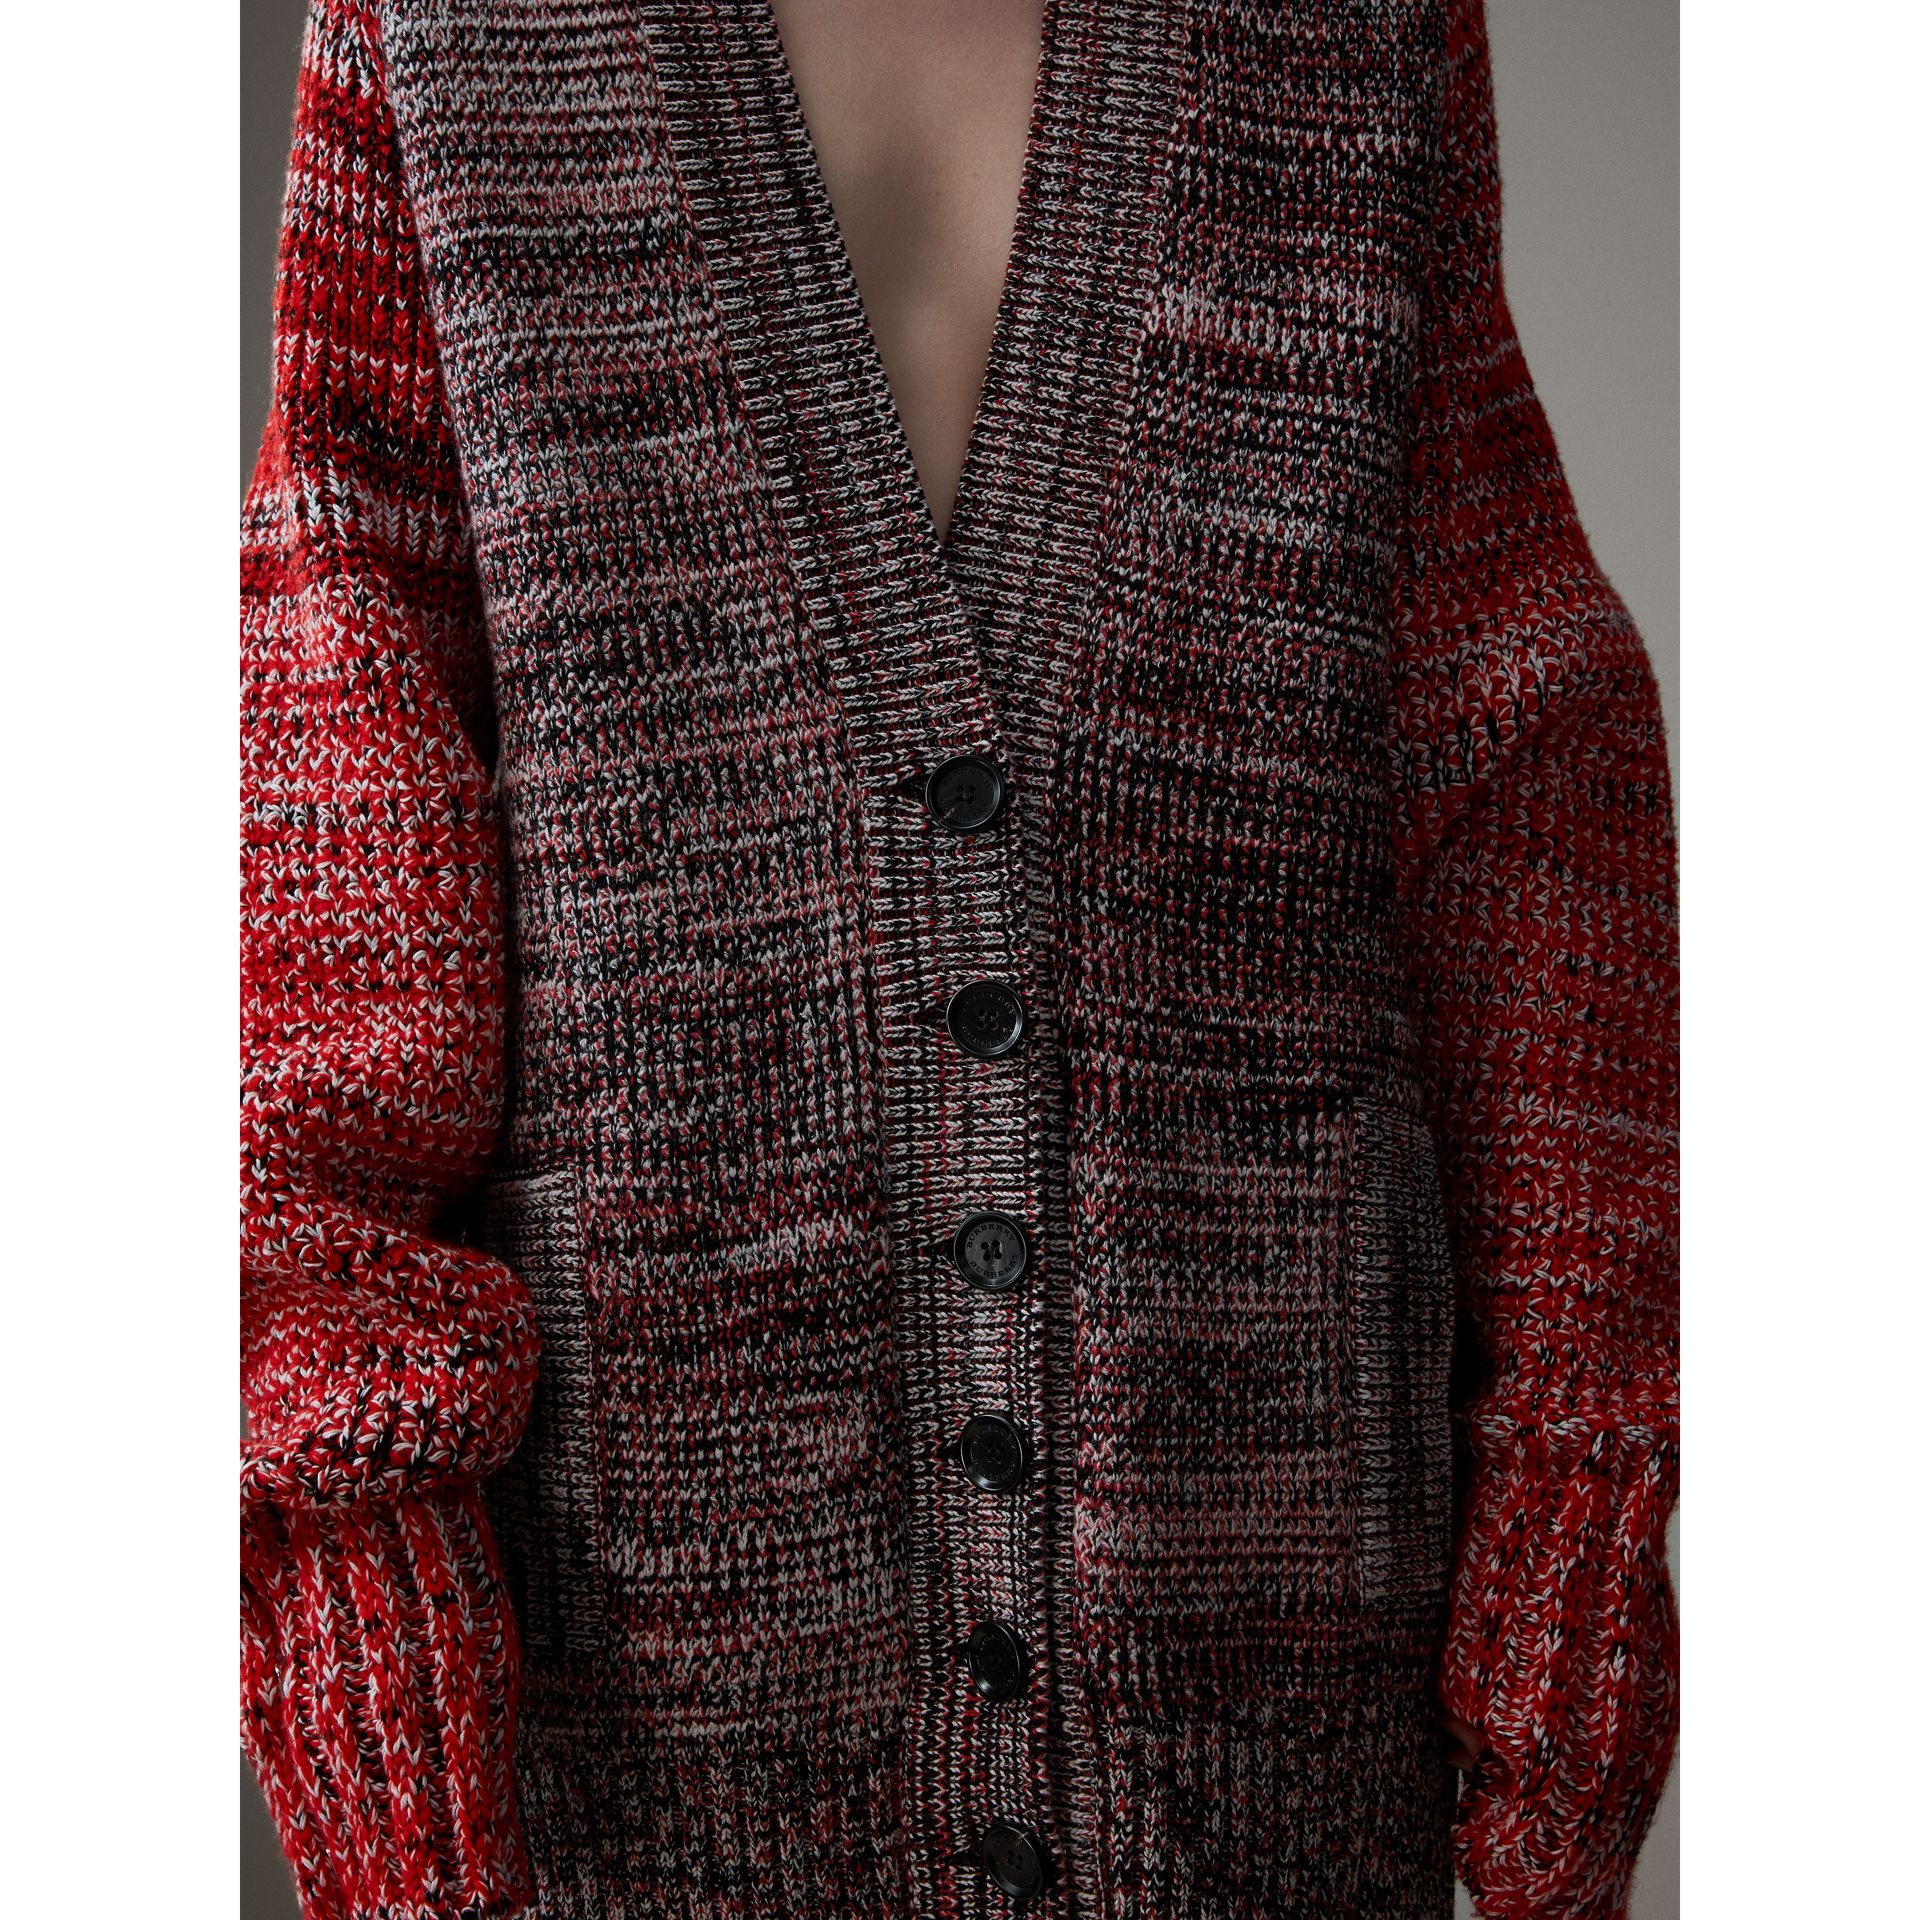 Cashmere Wool Blend Mouliné Oversized Cardigan in Red/black - Women | Burberry Australia - gallery image 1